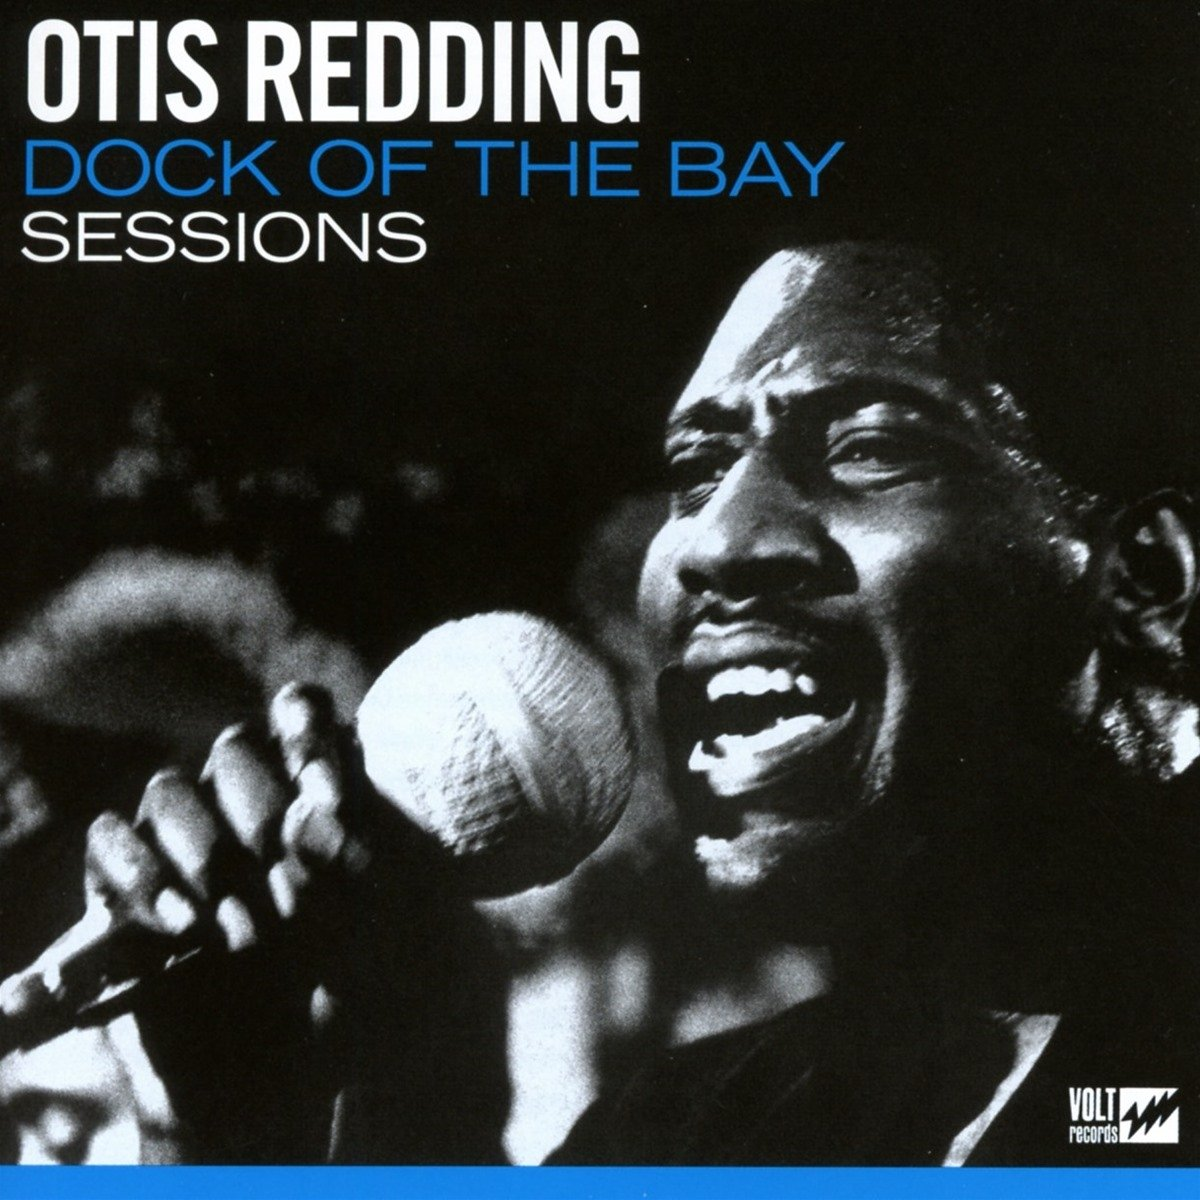 CD : Otis Redding - Dock Of The Bay Sessions (CD)